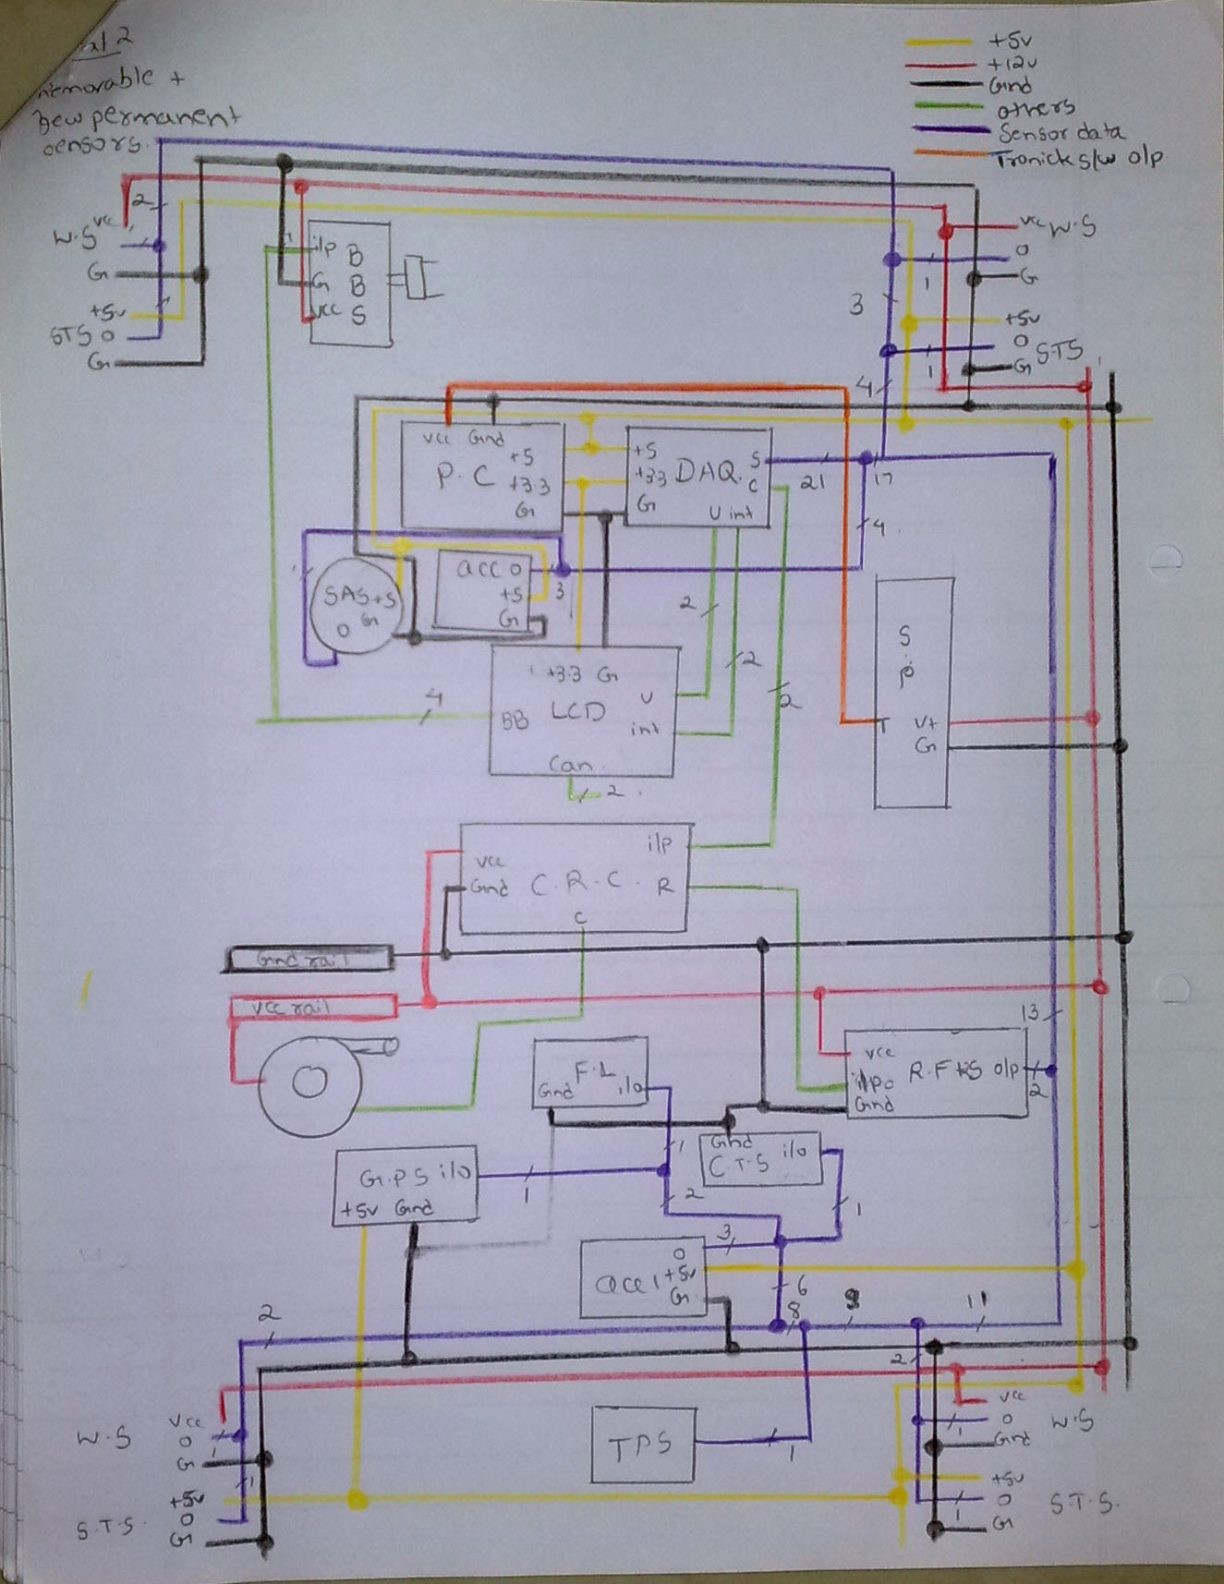 marine battery disconnect switch wiring diagram 63 chevy truck drag race car beautiful